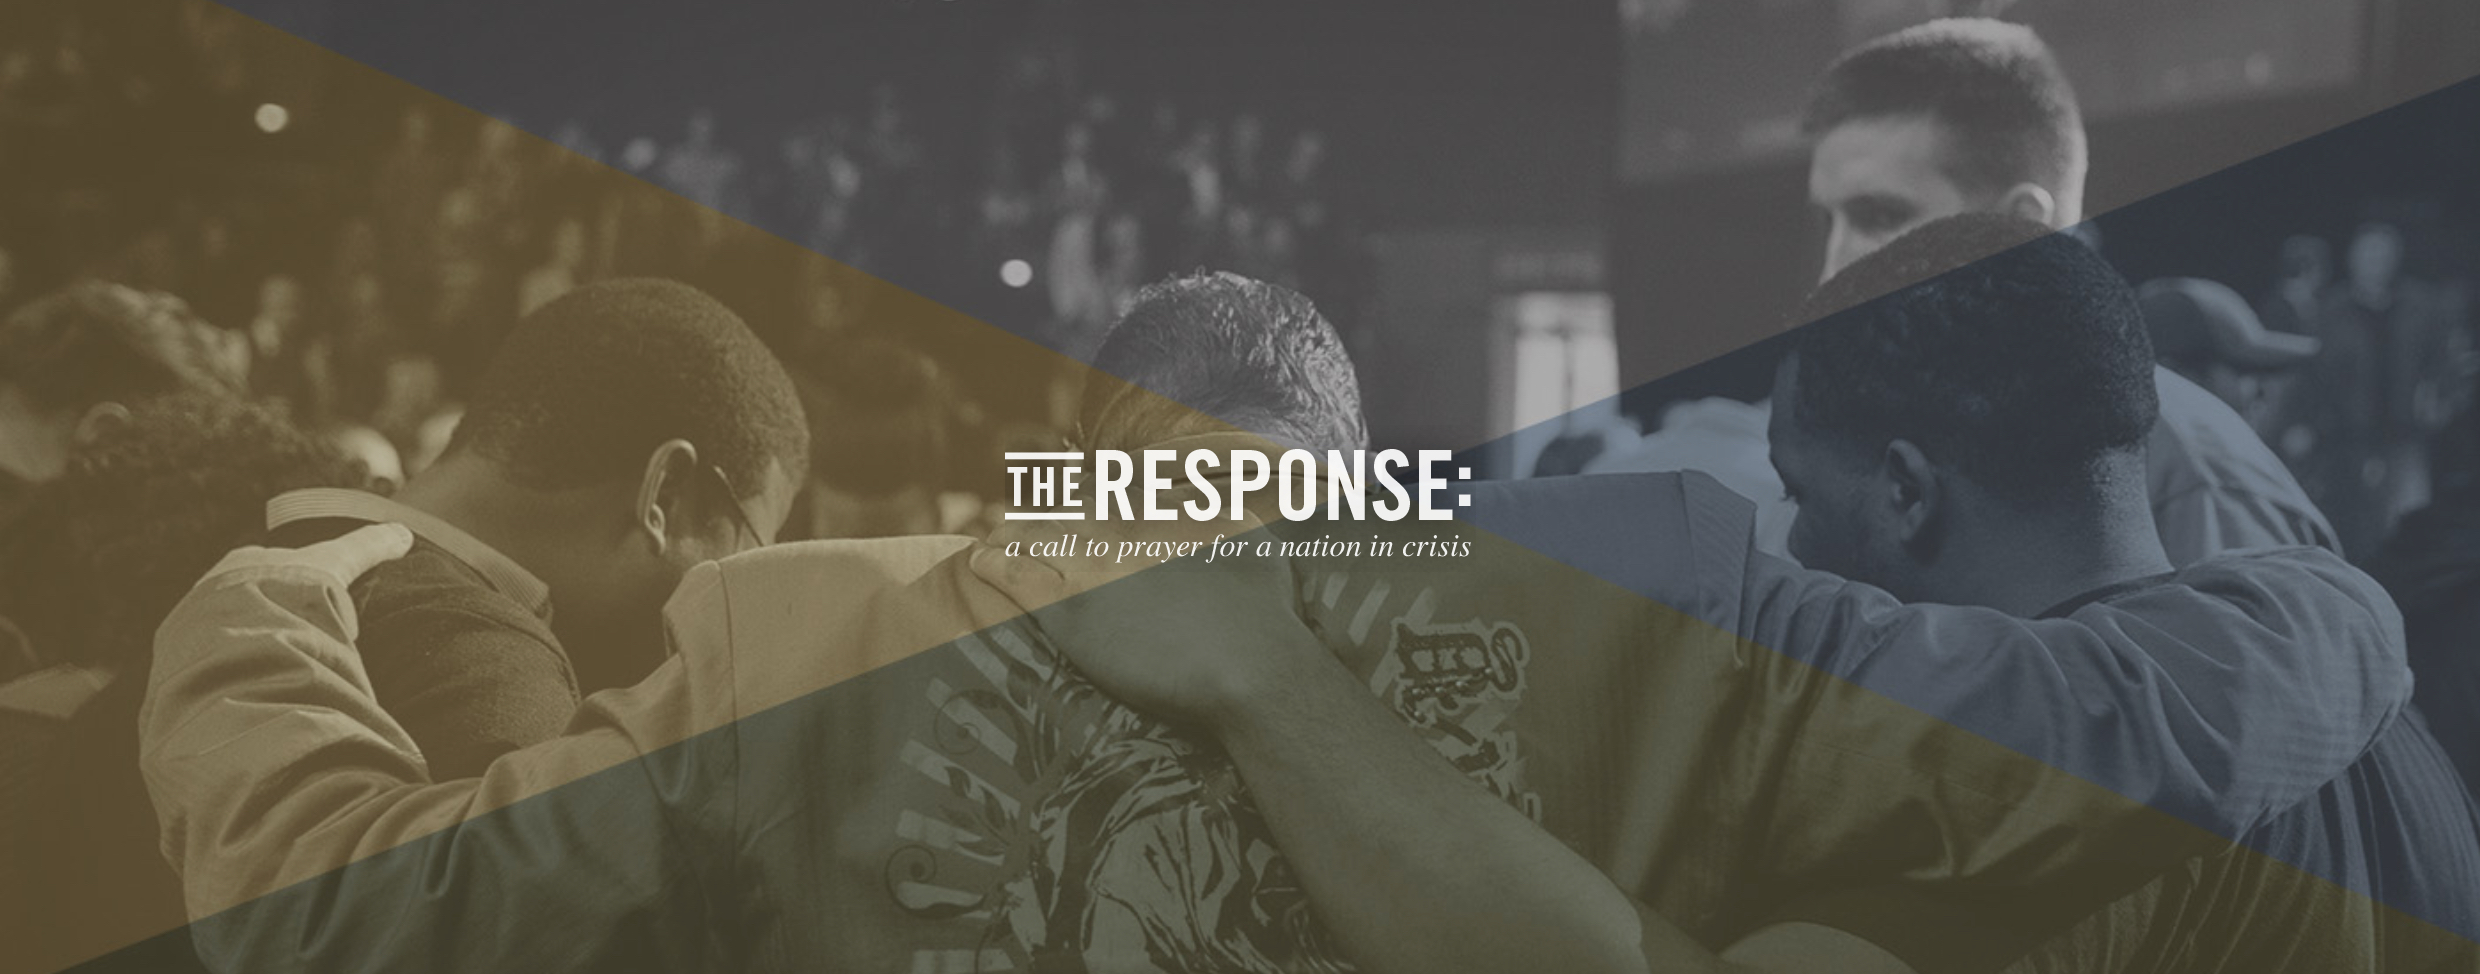 The Response: A Call to Prayer 9.26.15